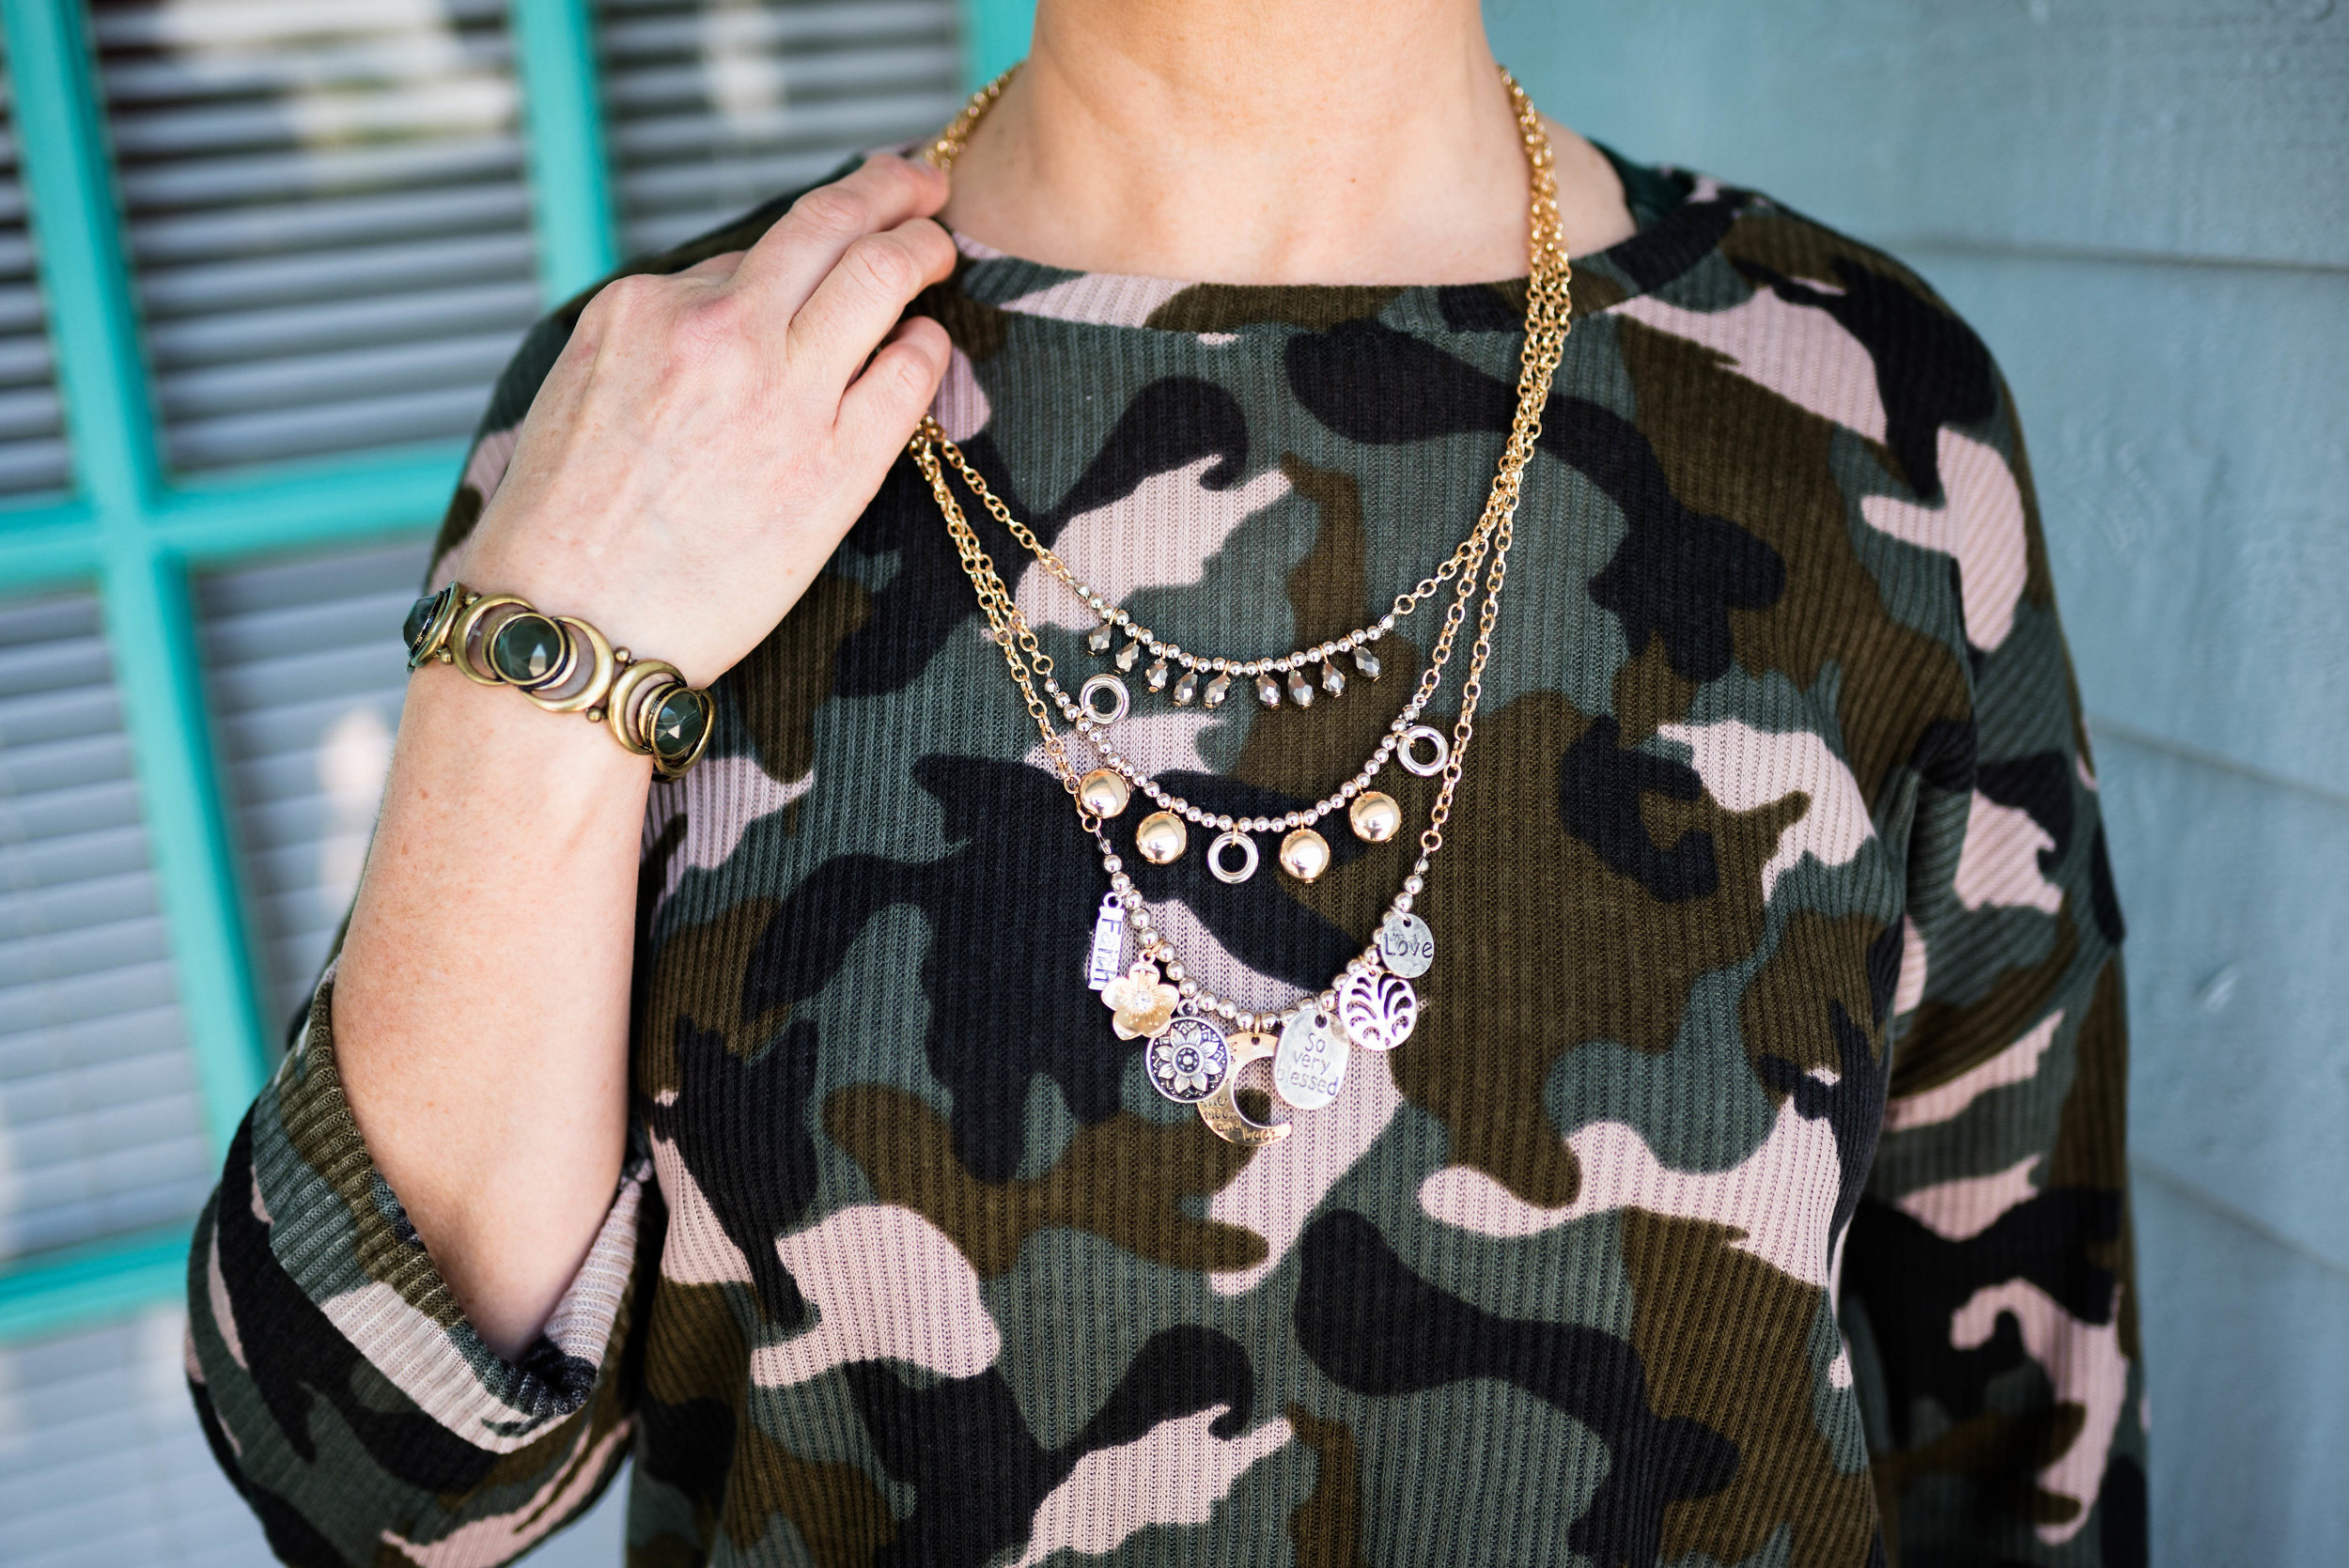 Working undercover - camouflage top